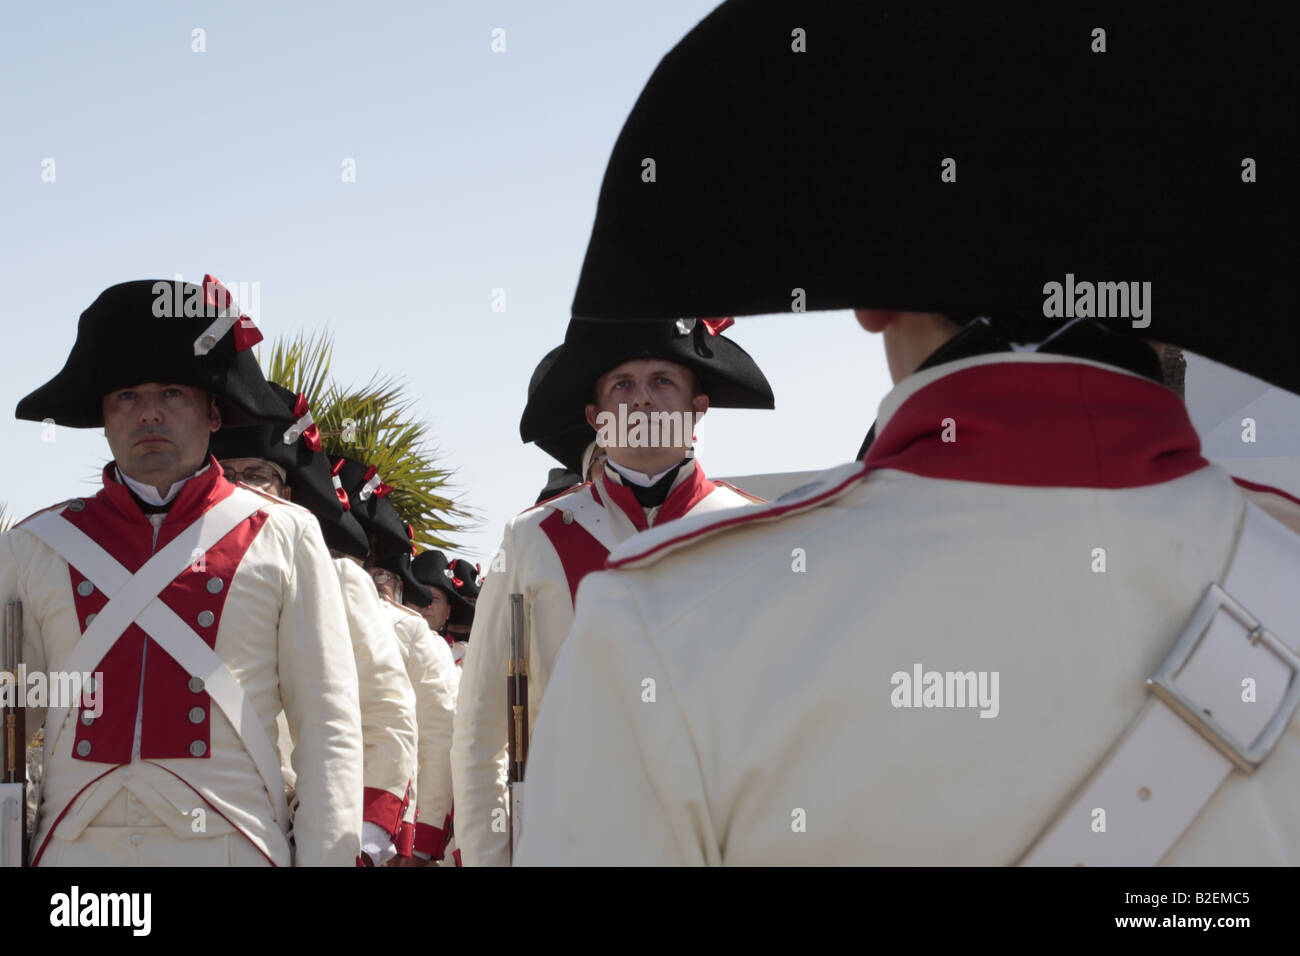 The Batallon de Canarias lines up ready to take part in the reenactment of the 1797 battle of Santa Cruz, Tenerife Stock Photo